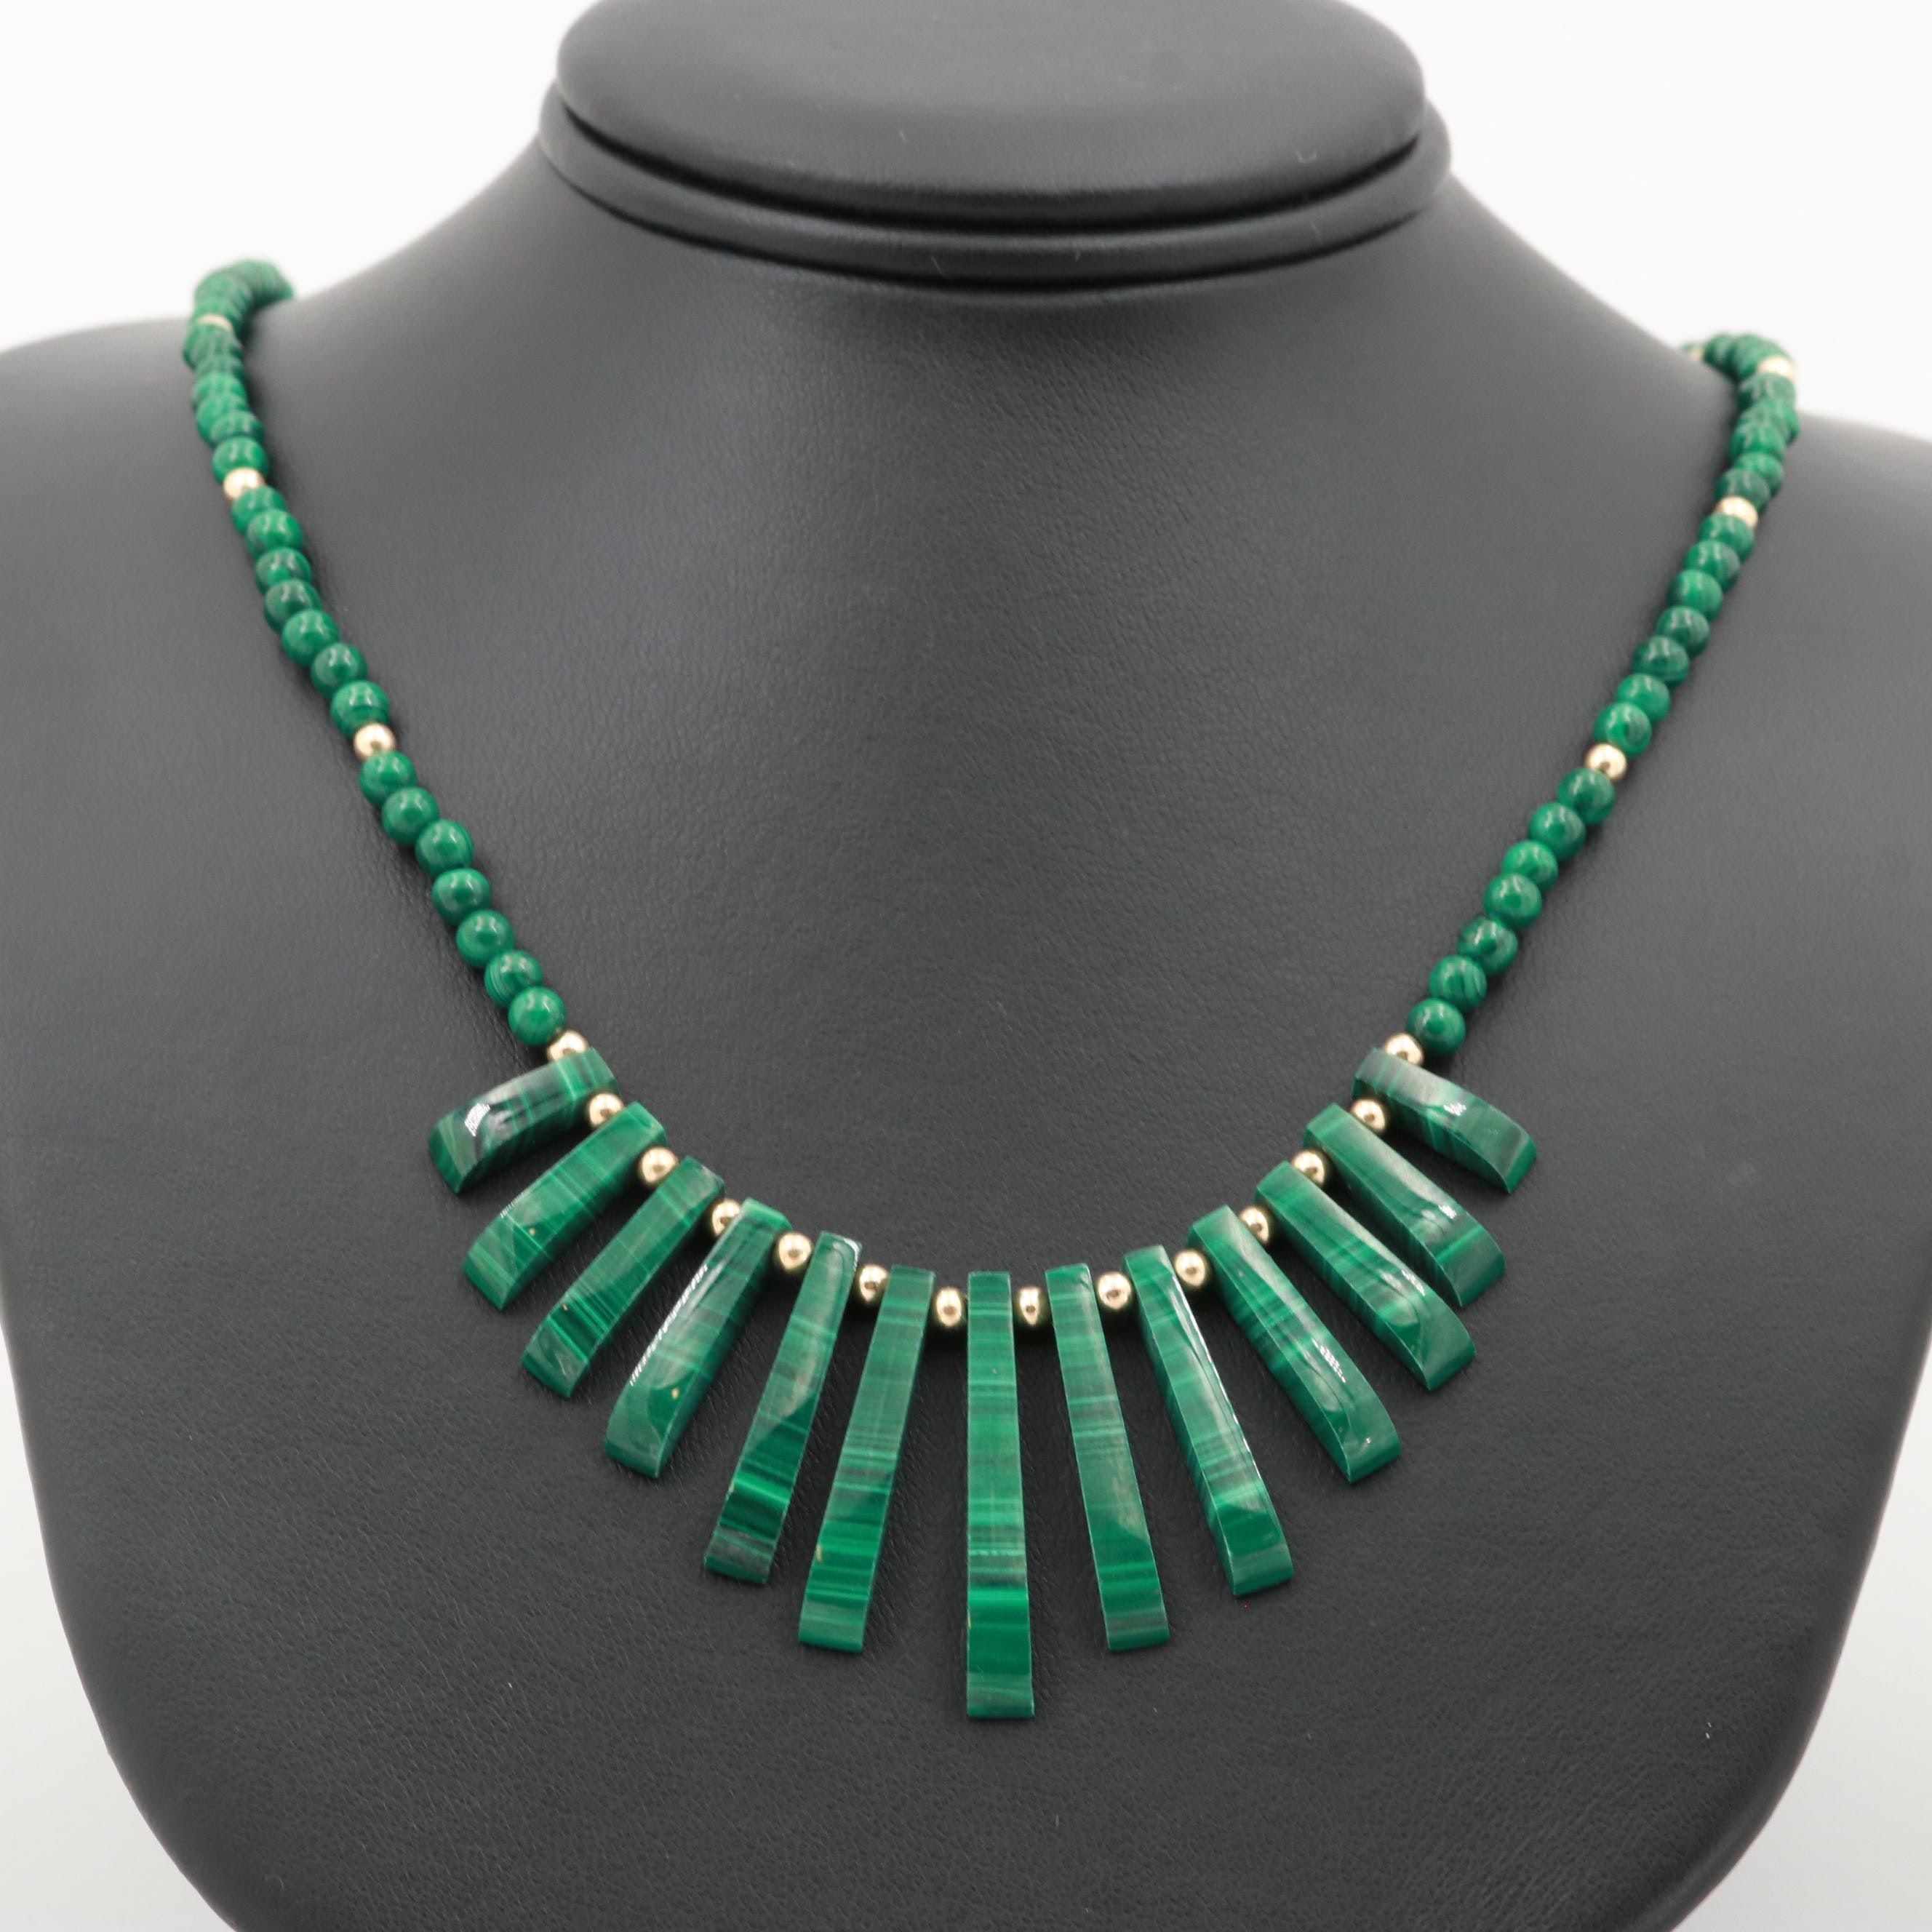 14K Yellow Gold Malachite Bib Necklace